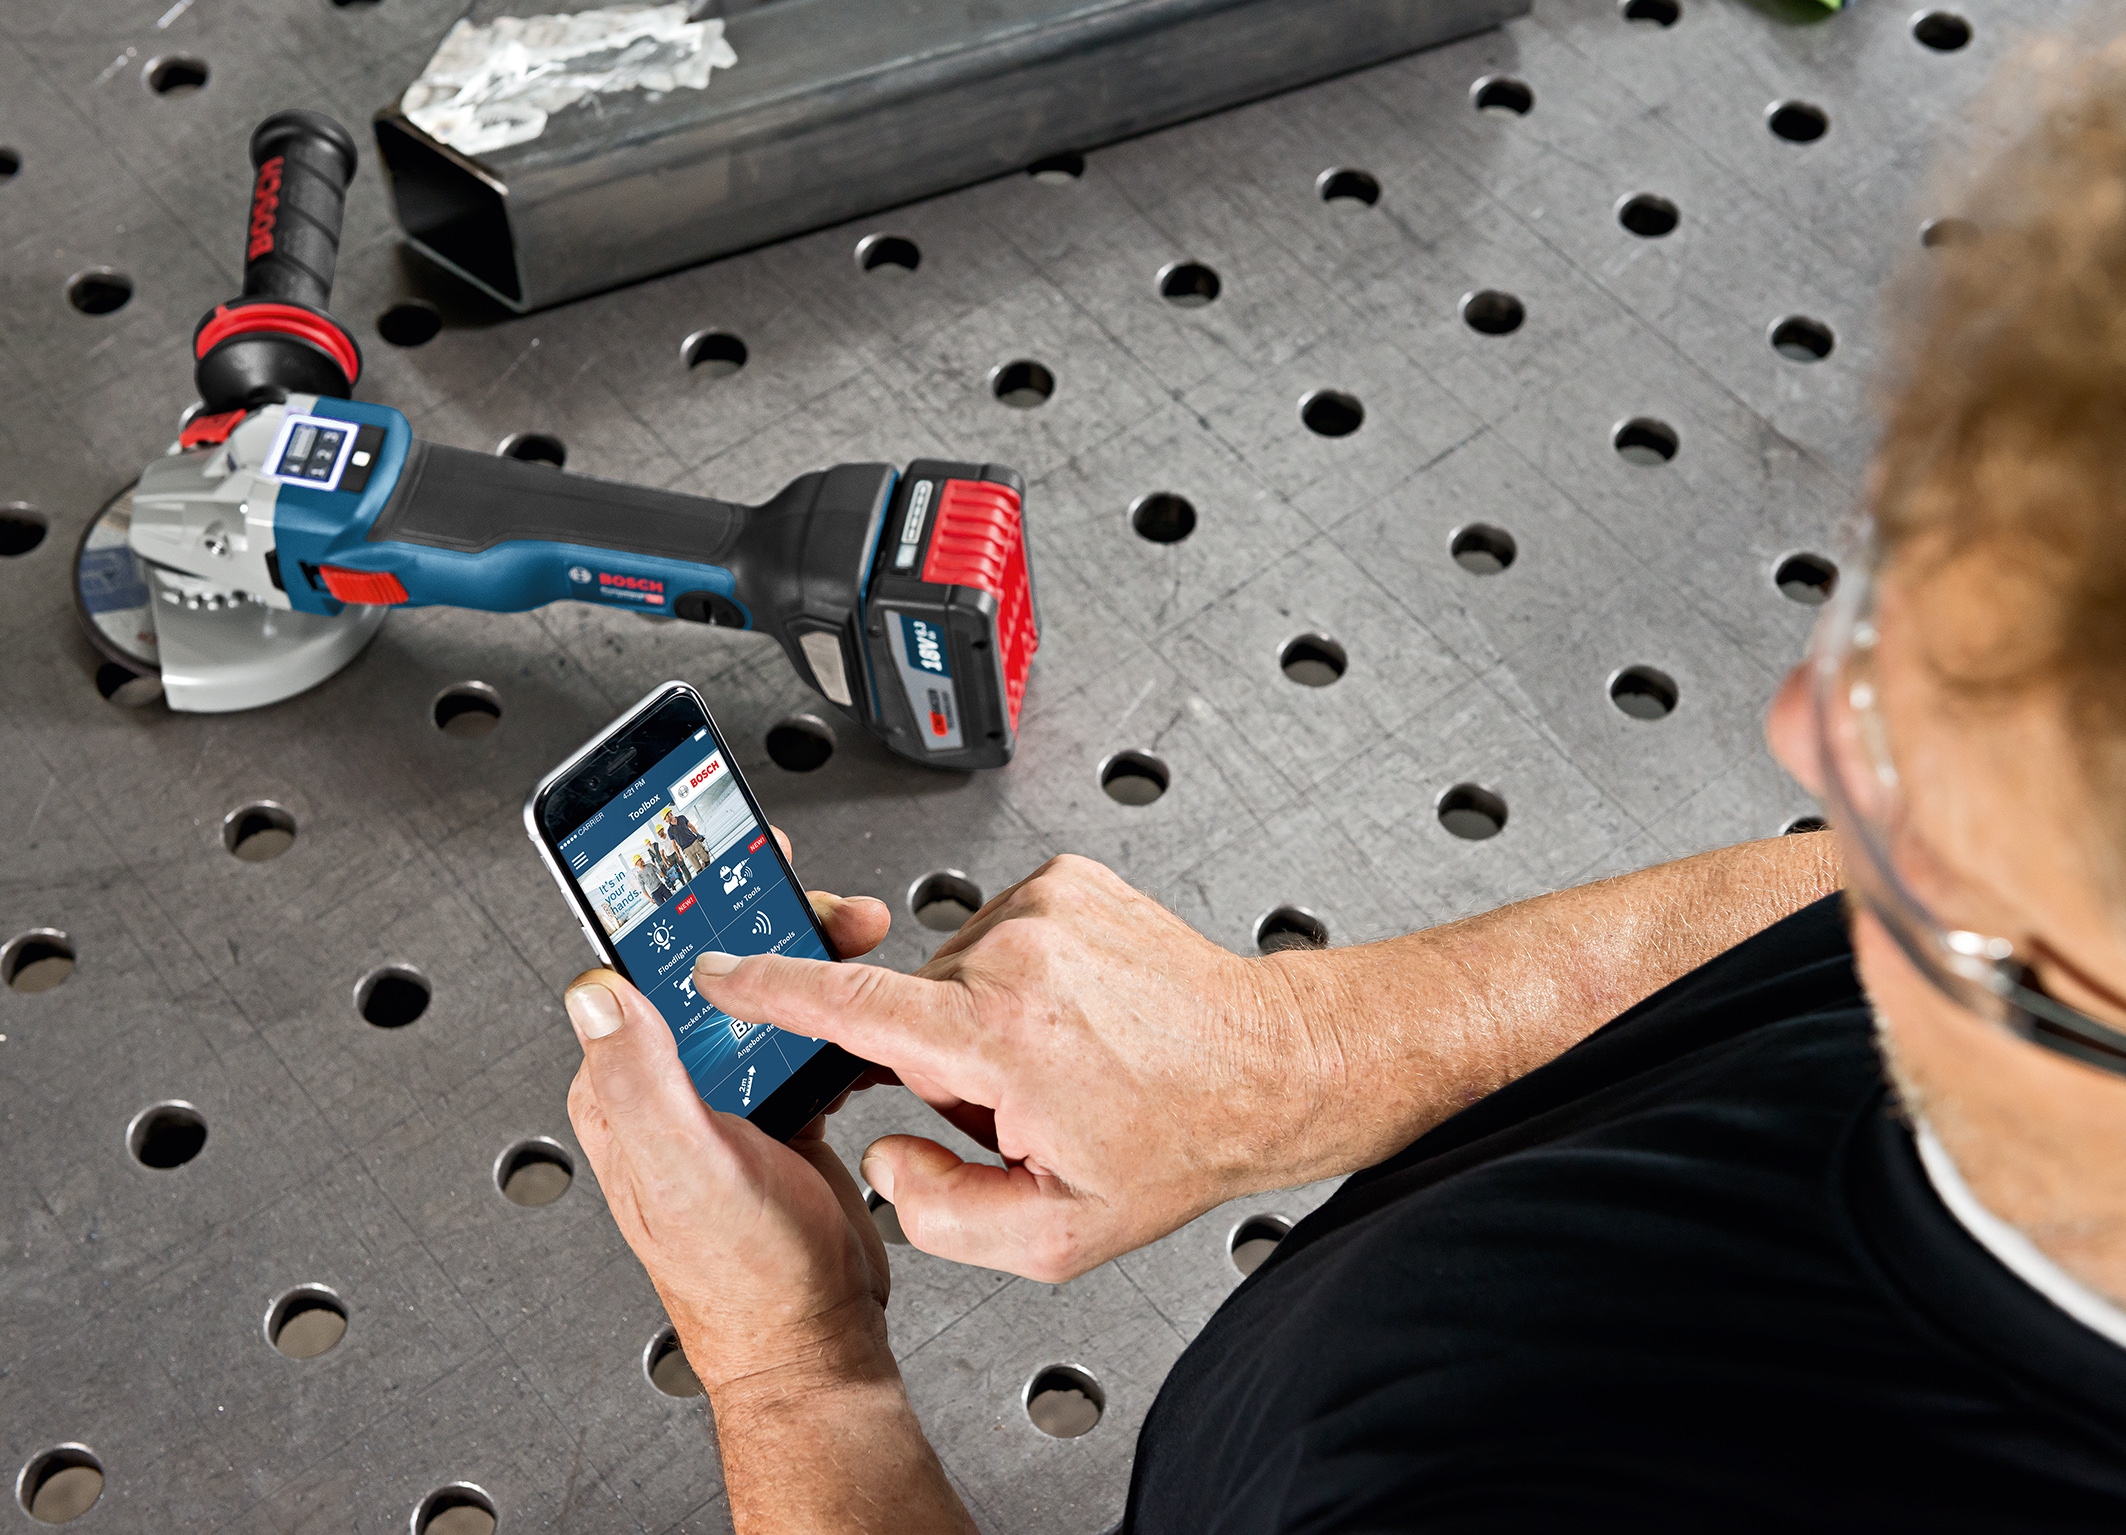 Increased efficiency and ease of use for professionals: world's first connectivity angle grinders from Bosch